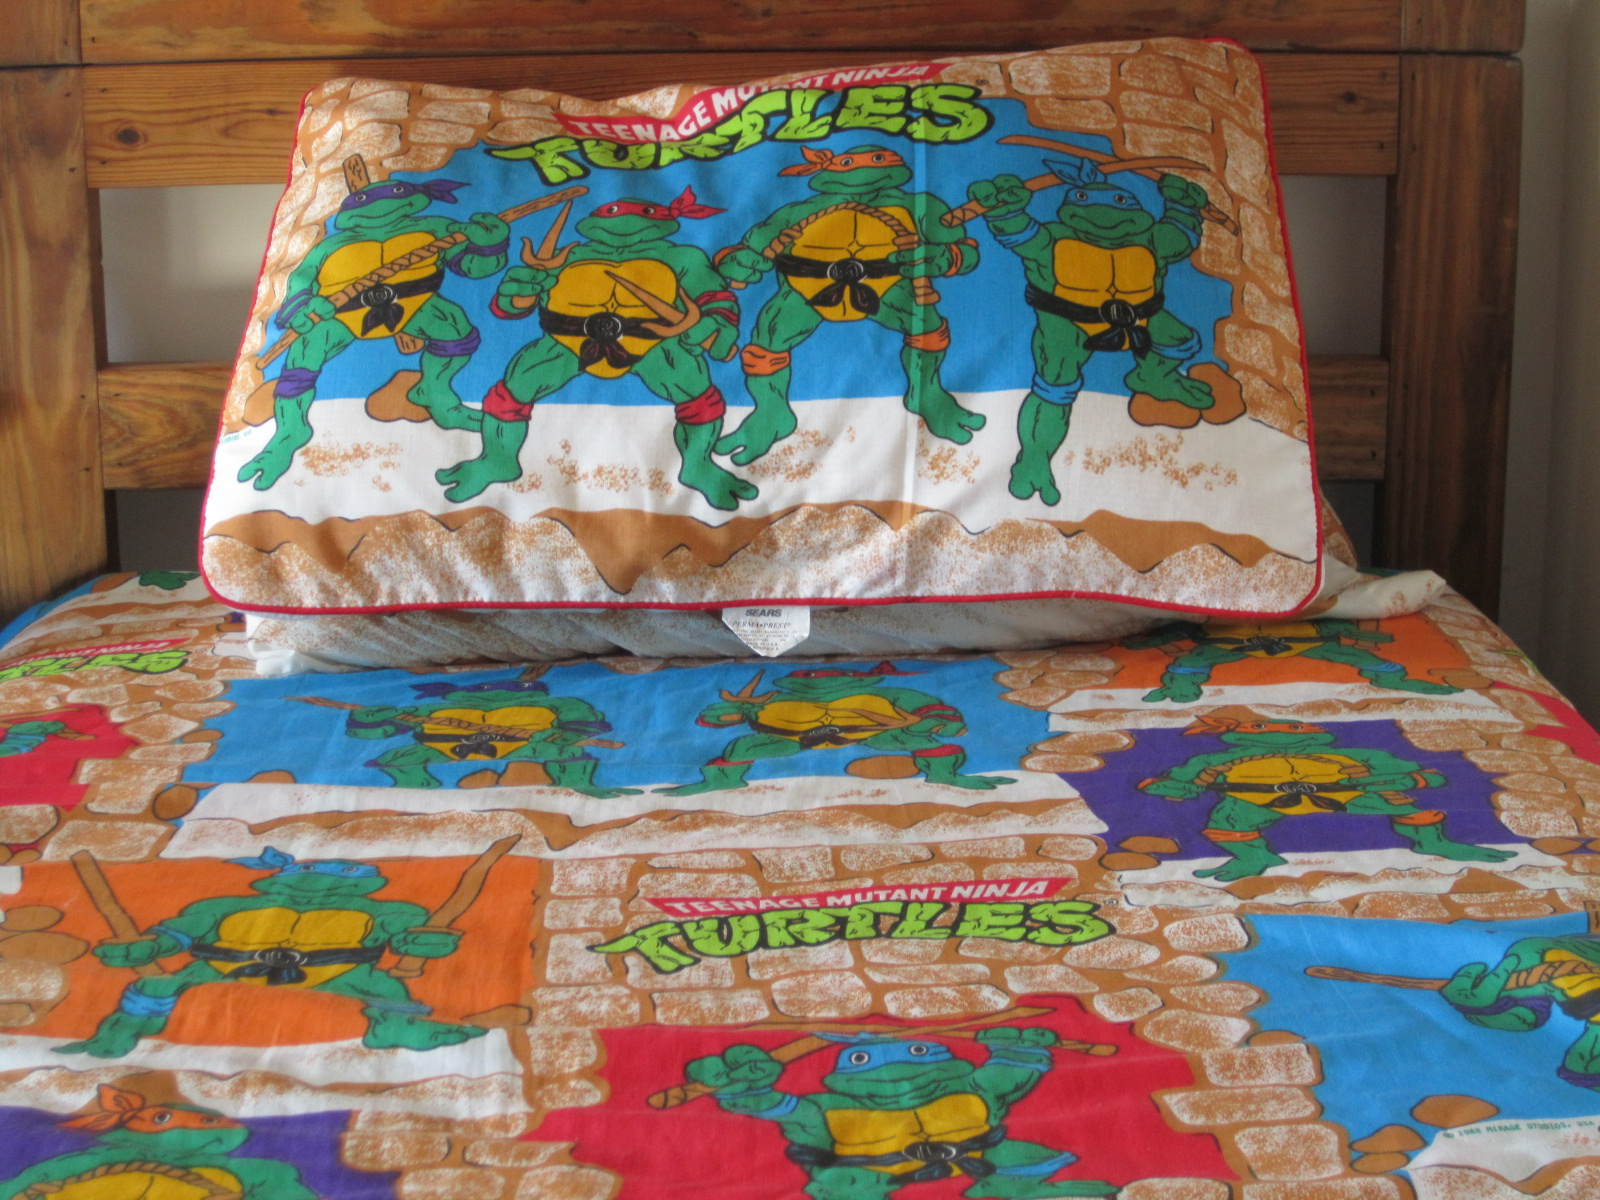 The Sewer Den Issue Goodnight Turtle JPG 1600x1200 Ninja Bed Set